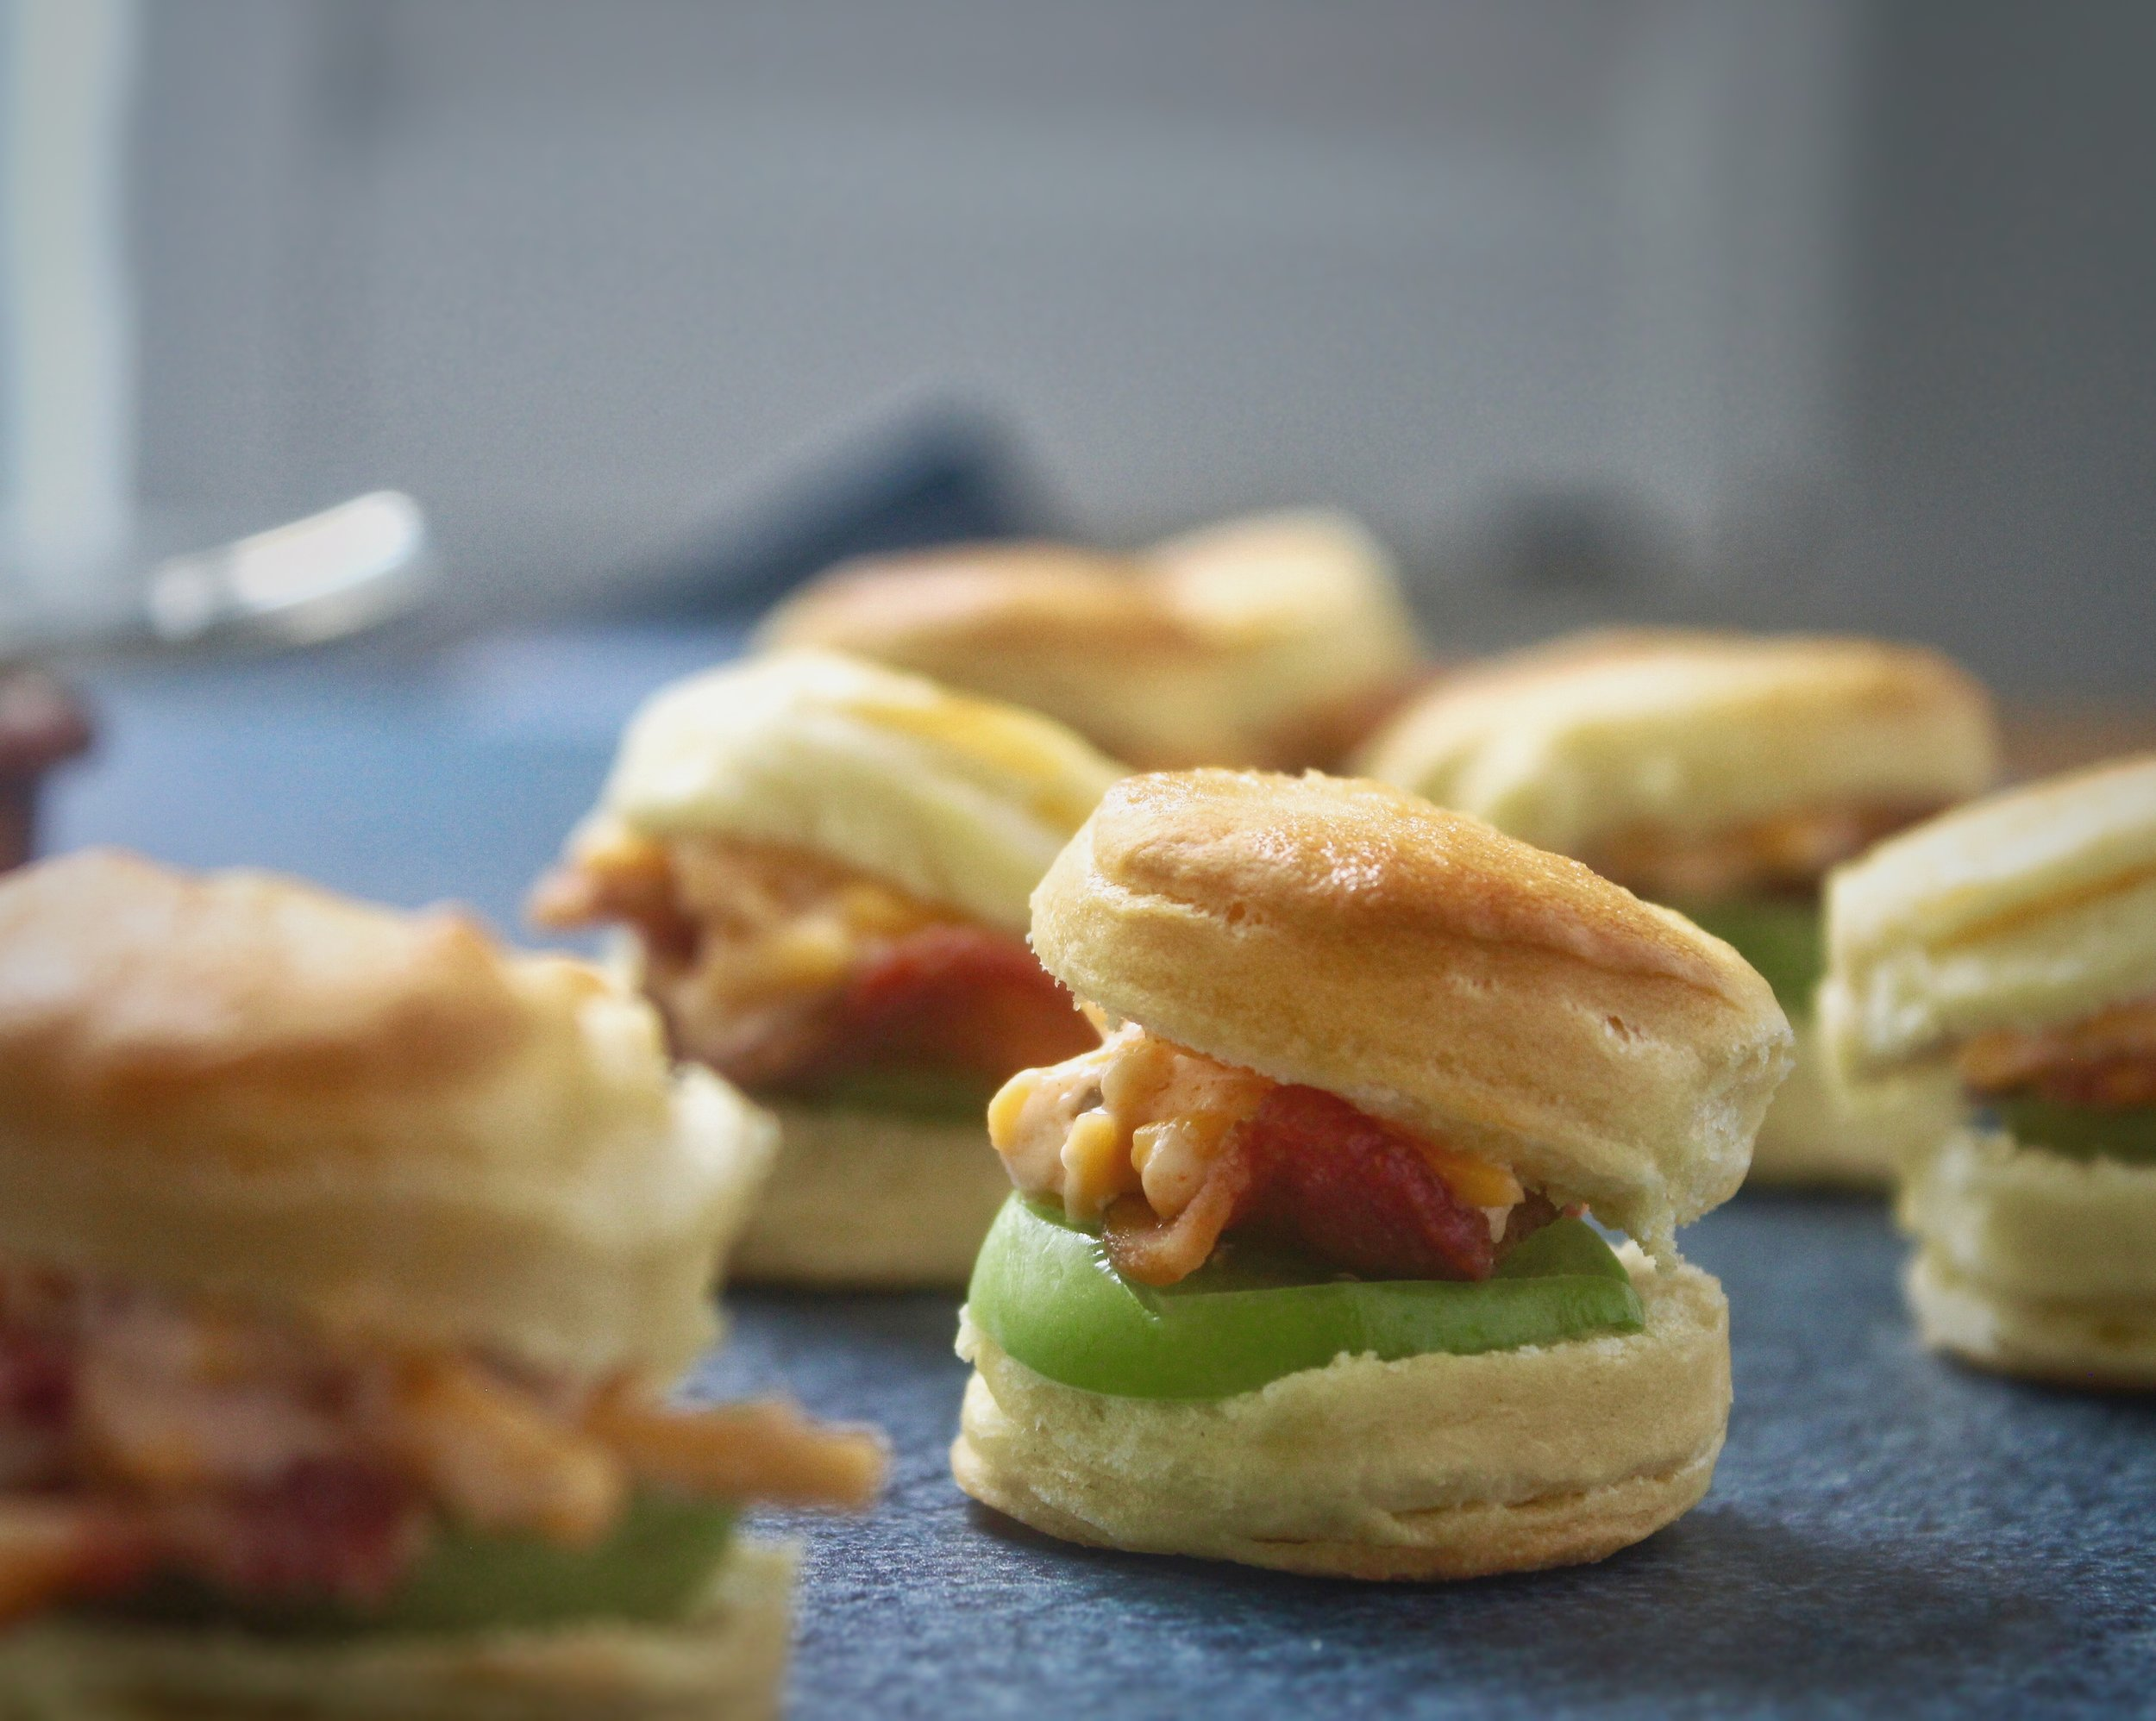 - Mini buttermilk biscuit with bacon, green tomato, and pimento cheese